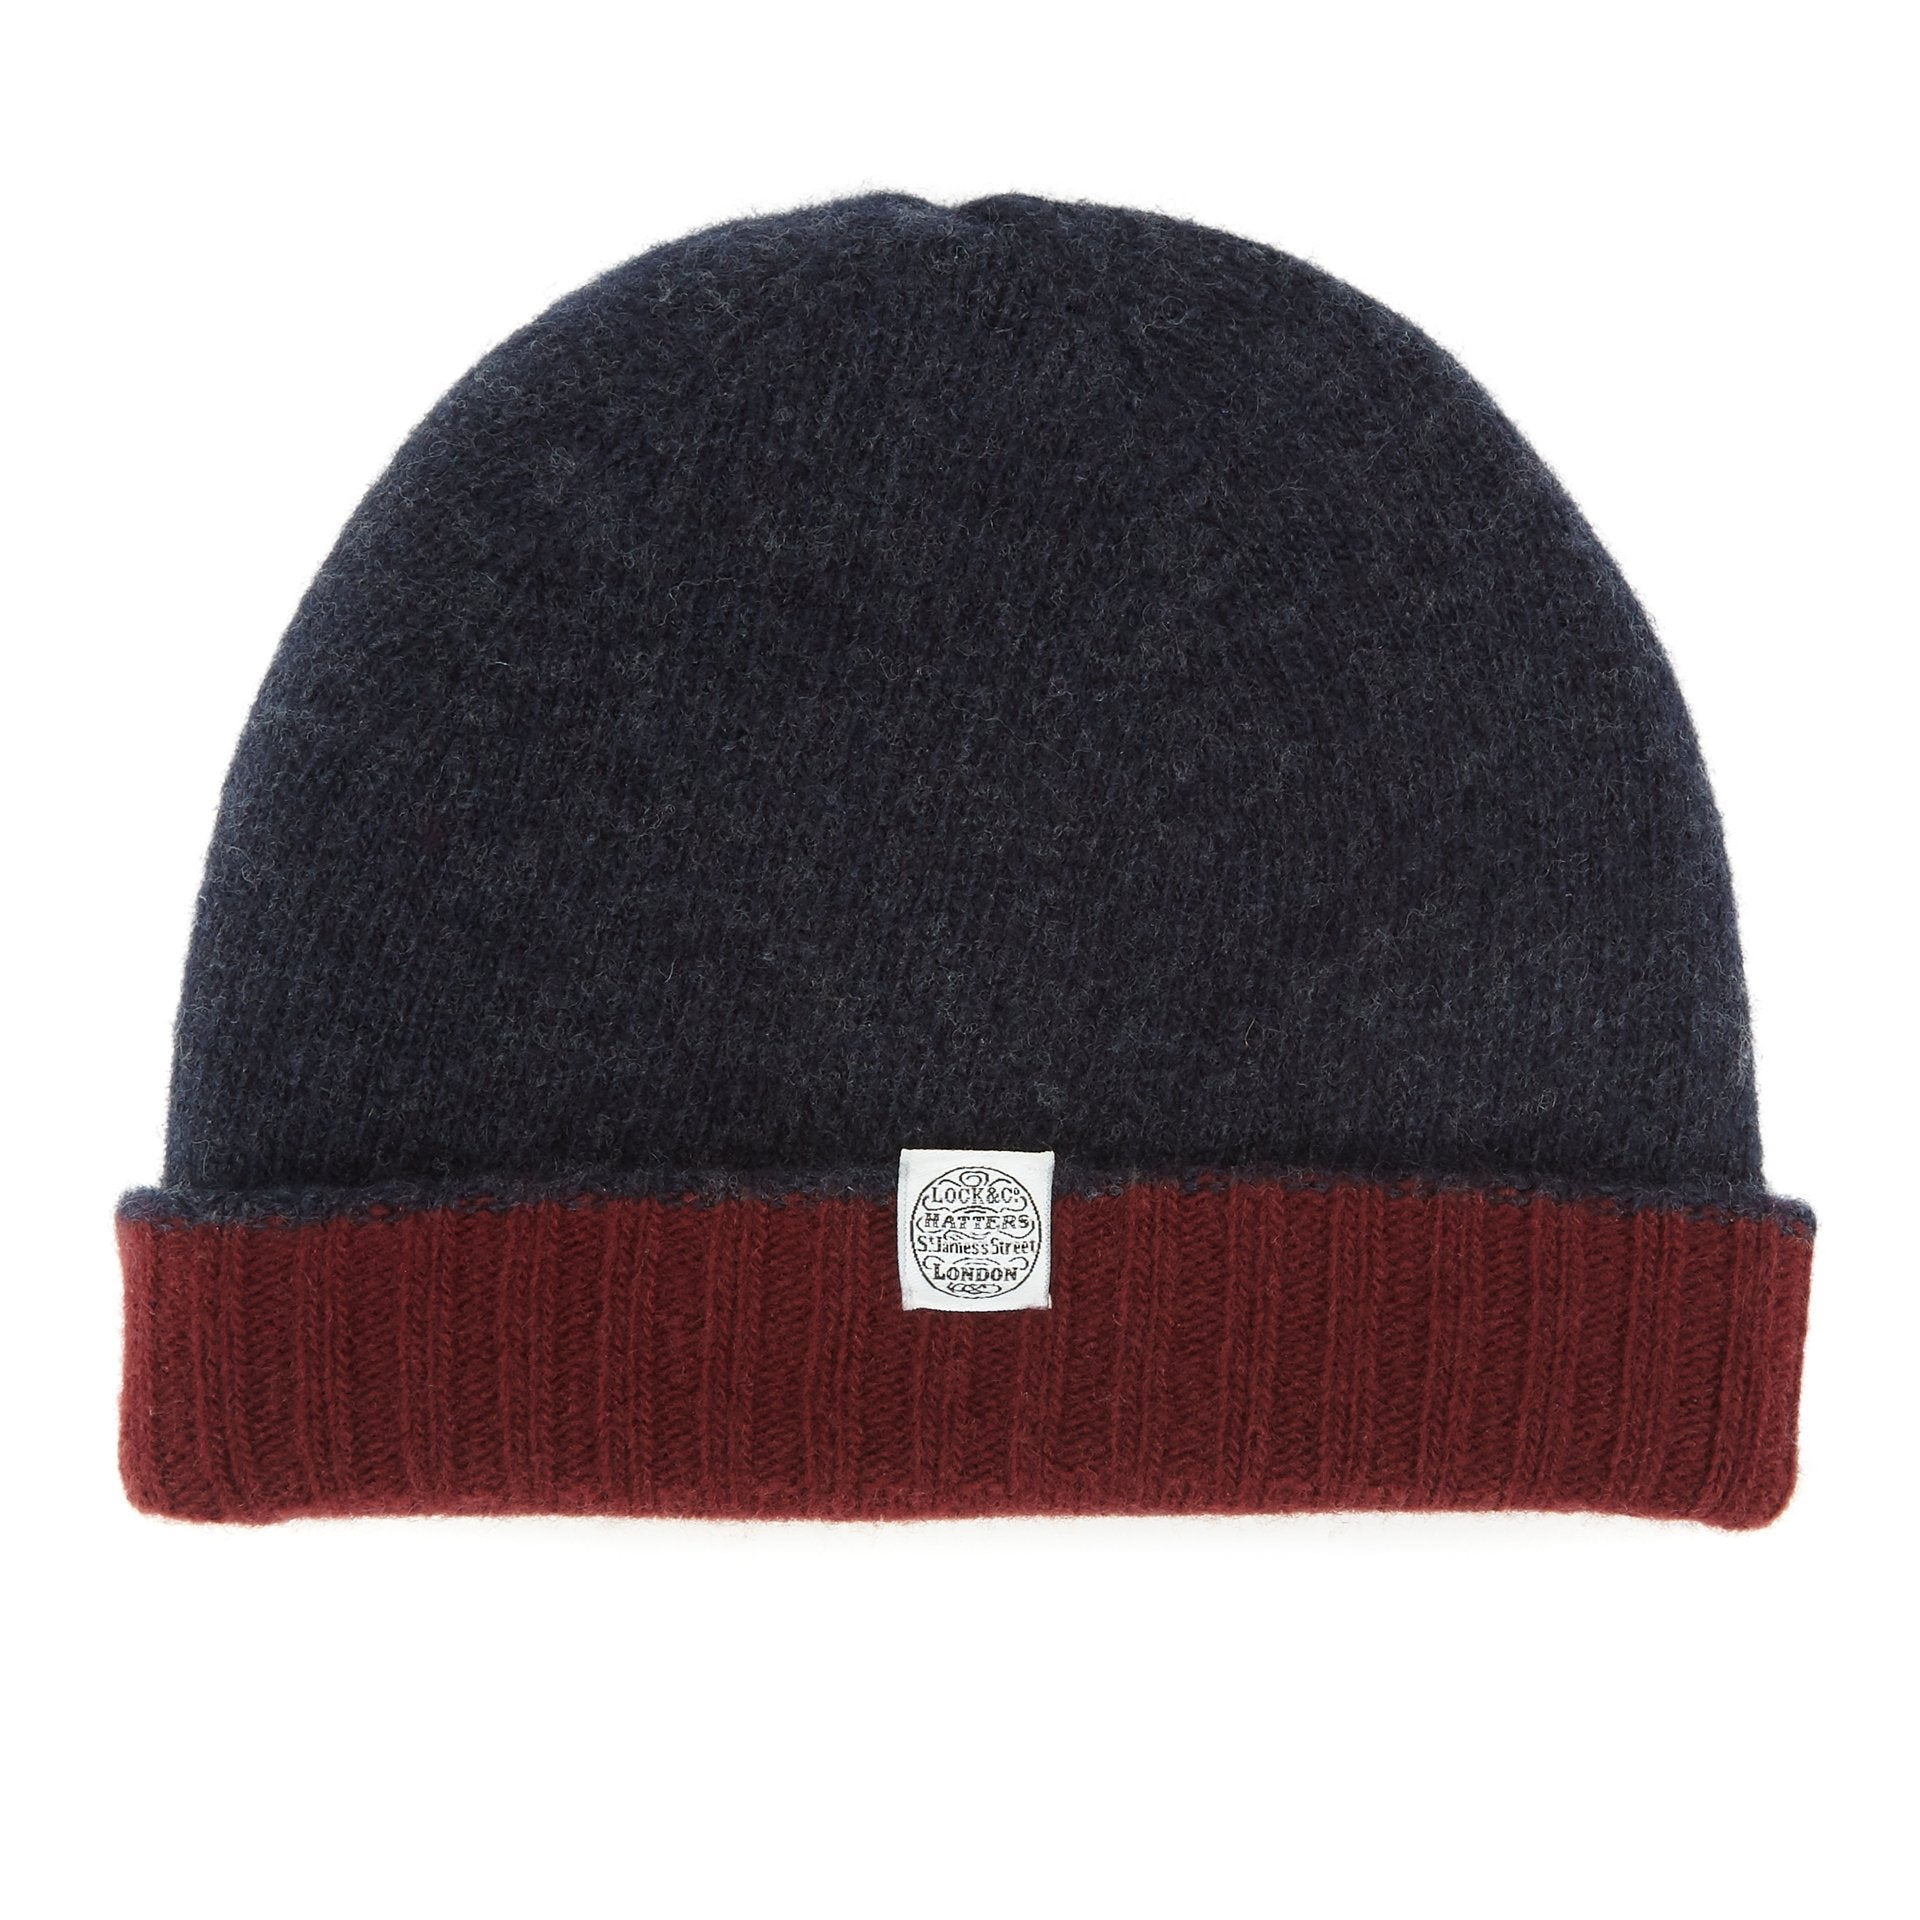 Vail reversible beanie - Beanies - Lock & Co. Hatters London UK